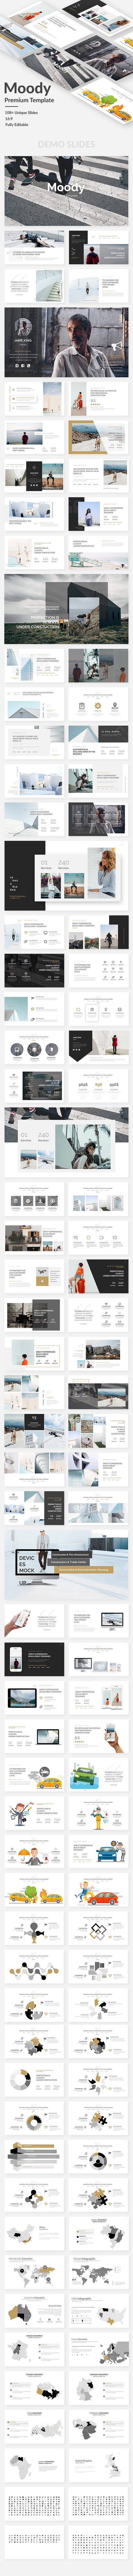 Moody Creative Powerpoint Template - Creative PowerPoint Templates